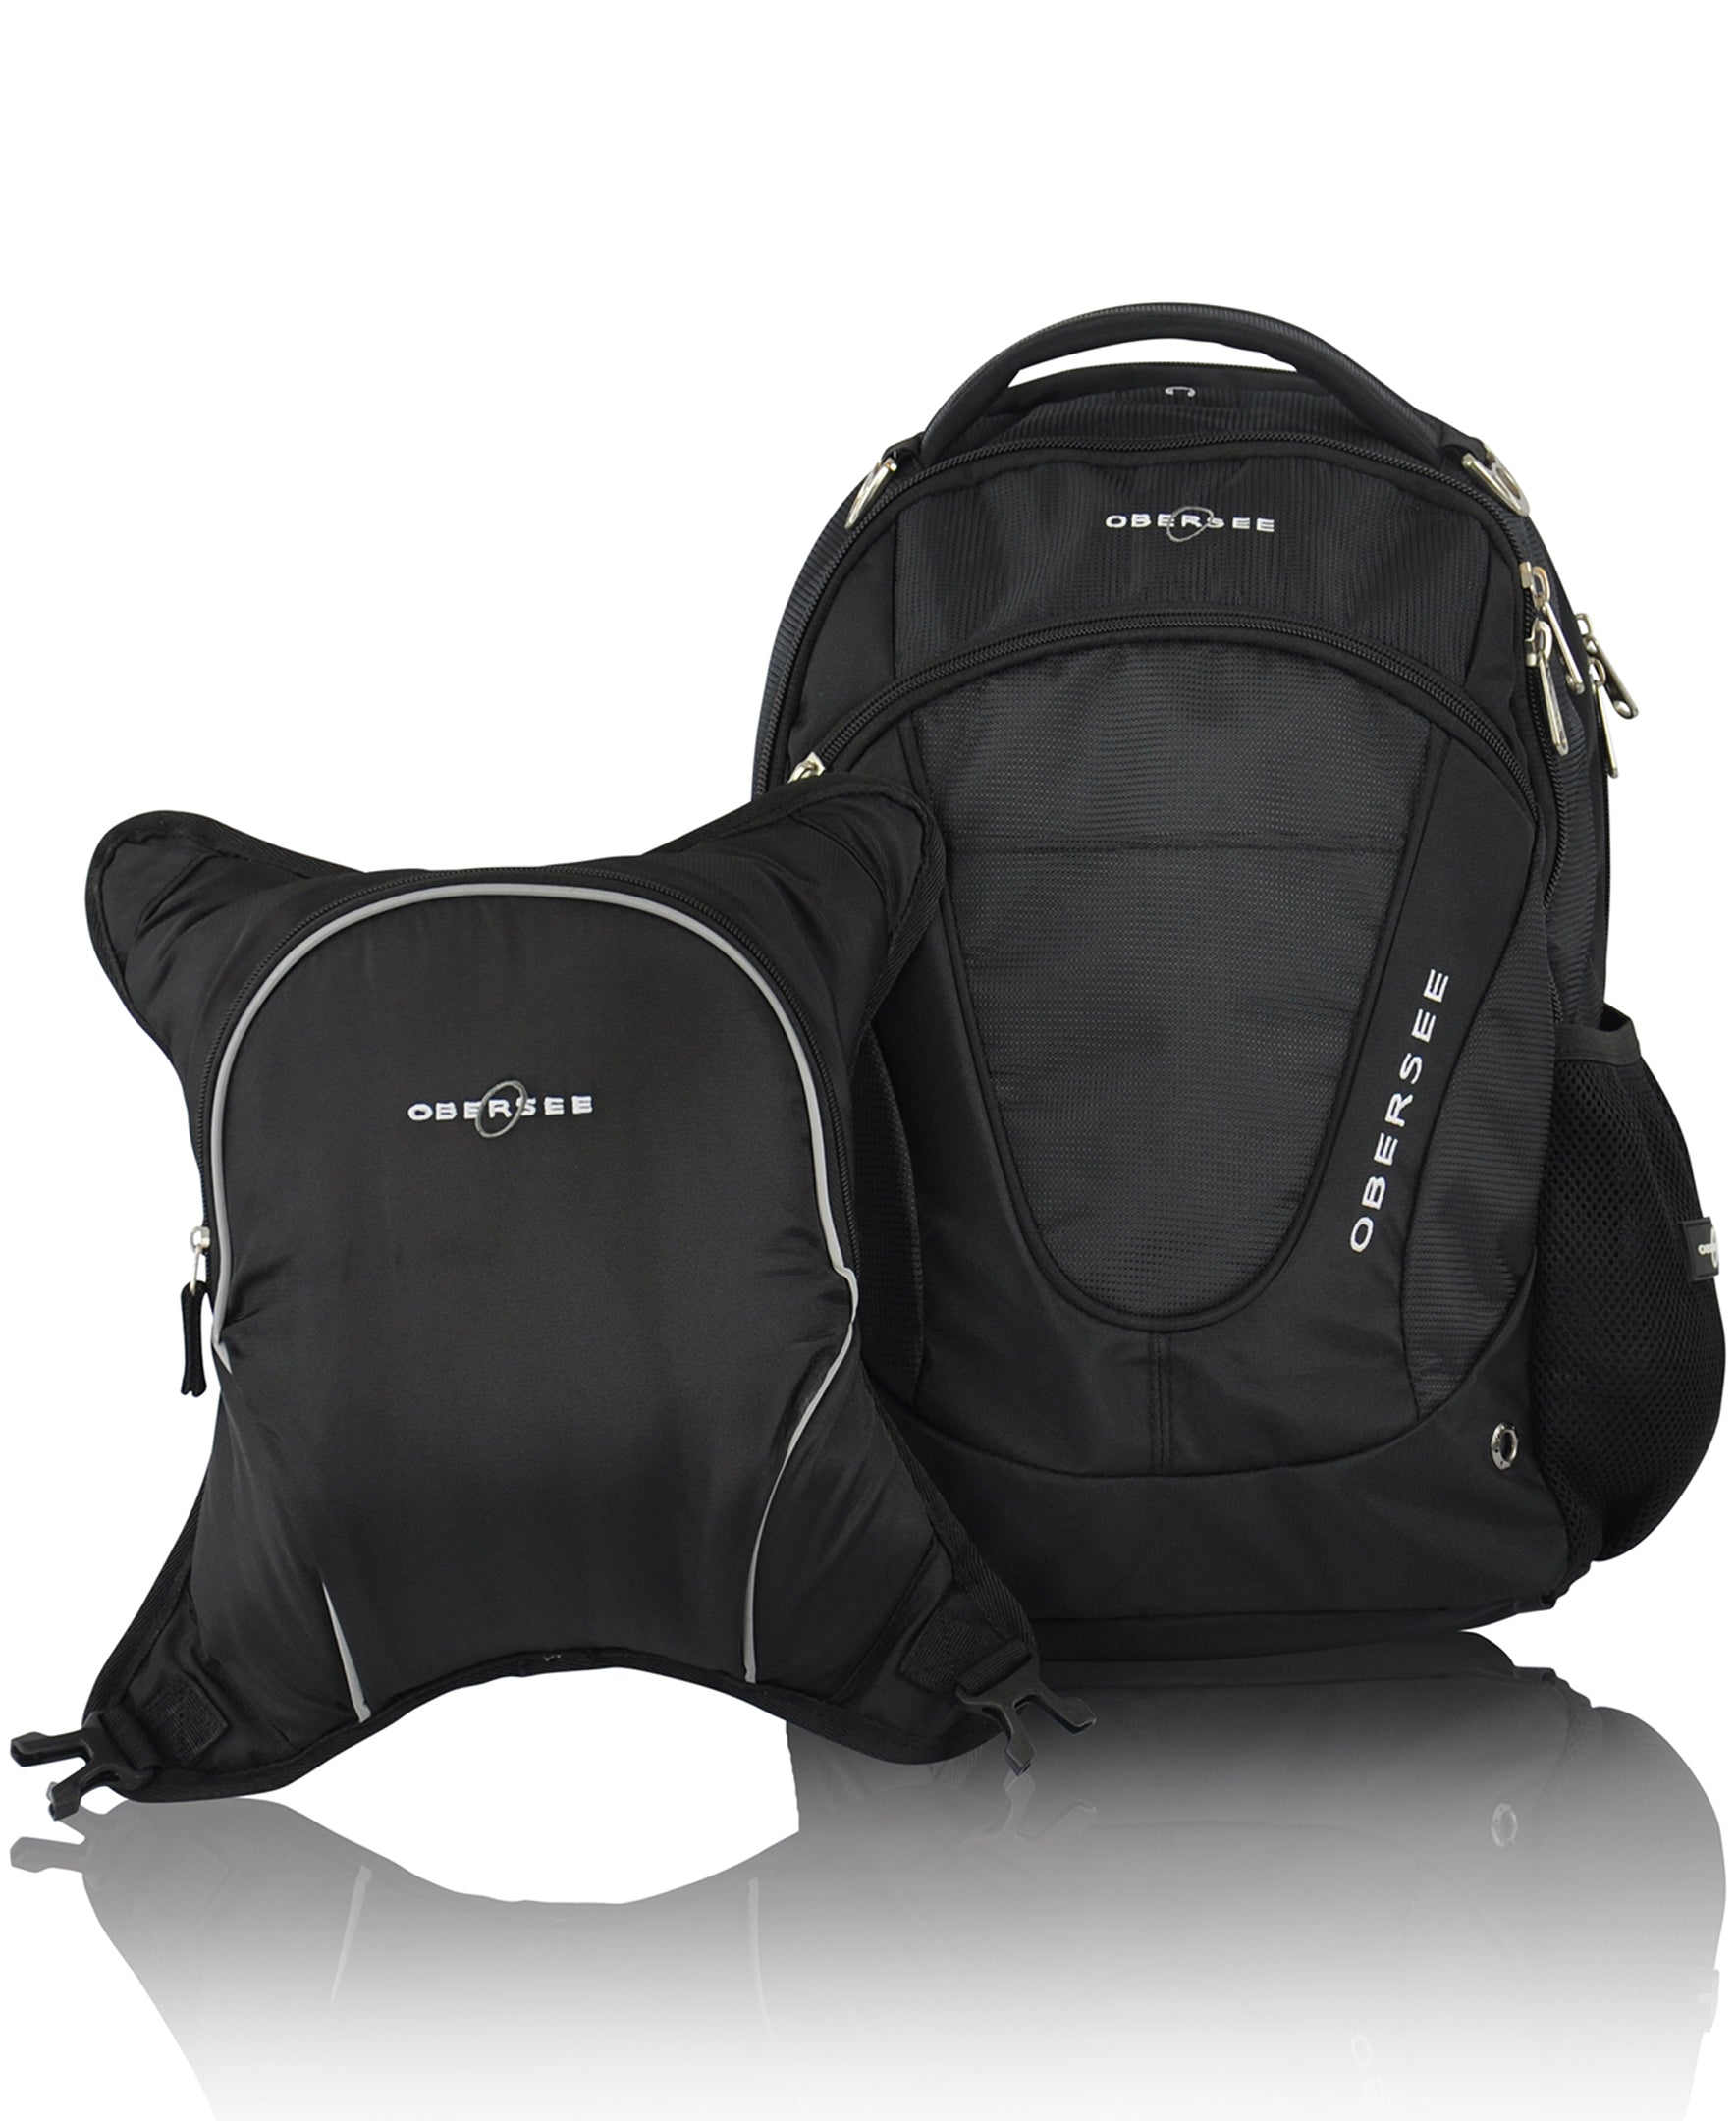 Black//Green Obersee Munich School Backpack with Detachable Lunch Cooler